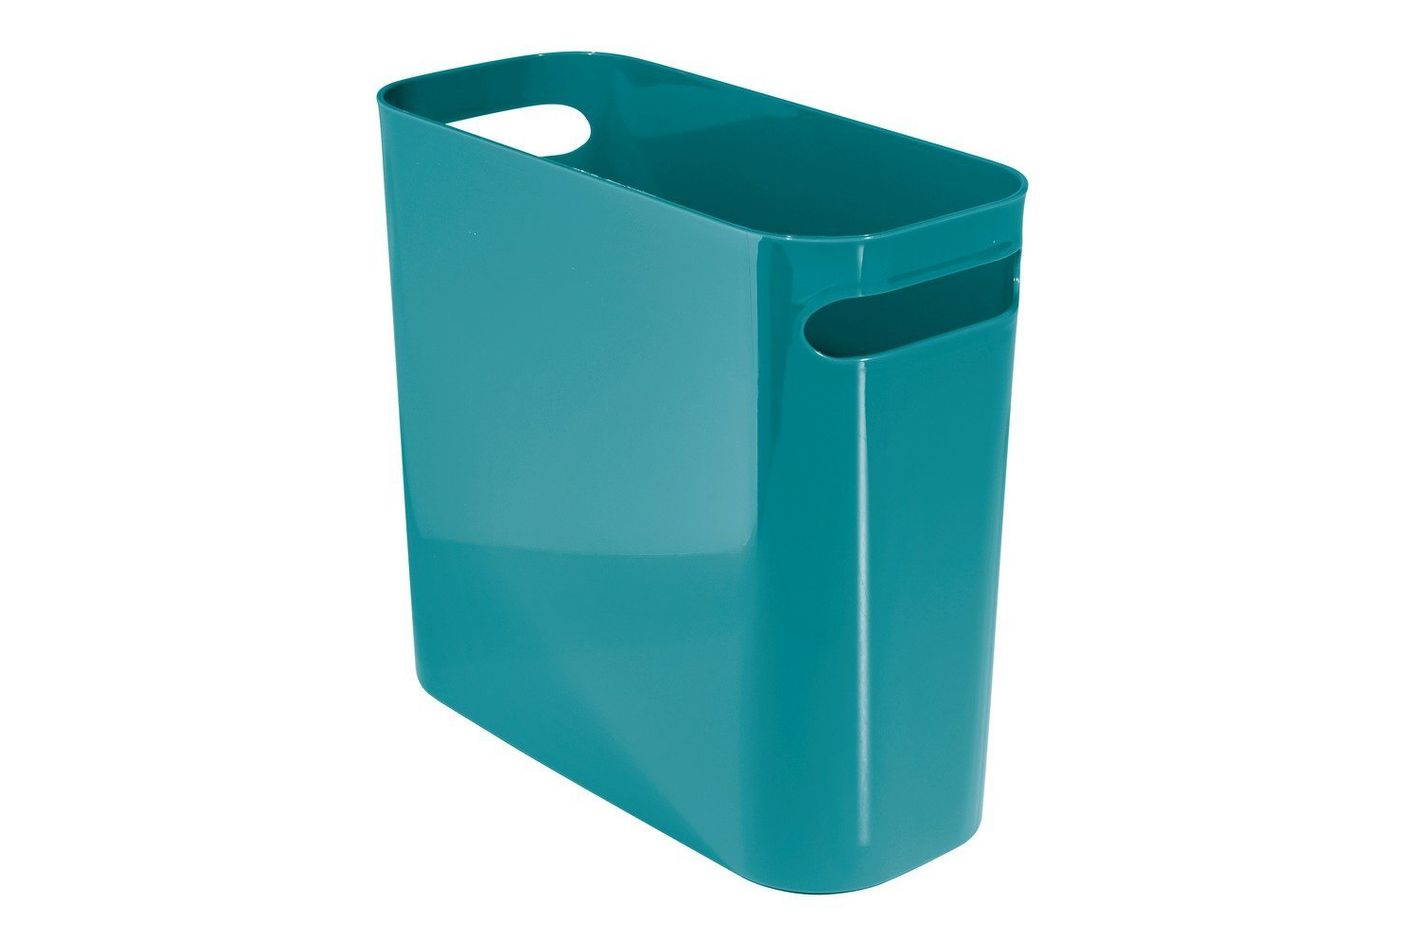 InterDesign Una Wastebasket Trash Can — 10 Inch, Teal